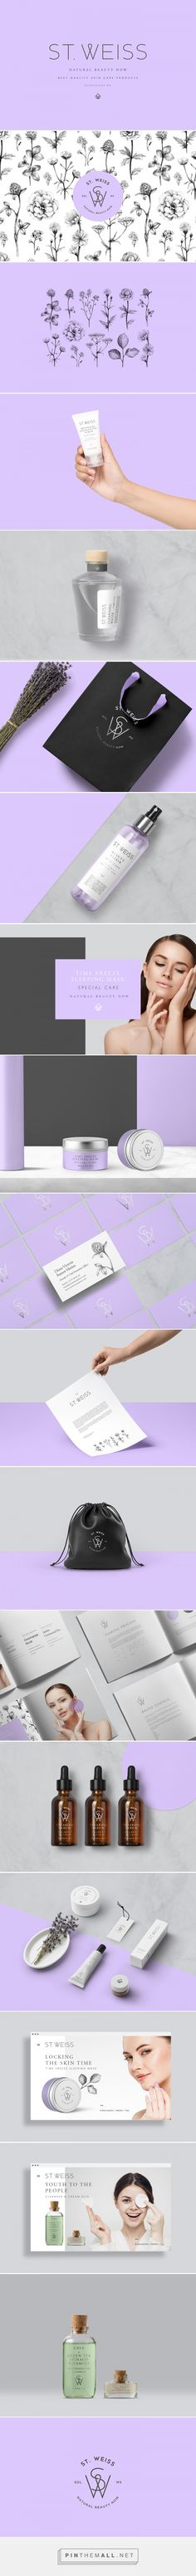 St. Weiss Skin Care Branding by Saturna Studio | Fivestar Branding Agency – Design and Branding Agency & Curated Inspiration Gallery